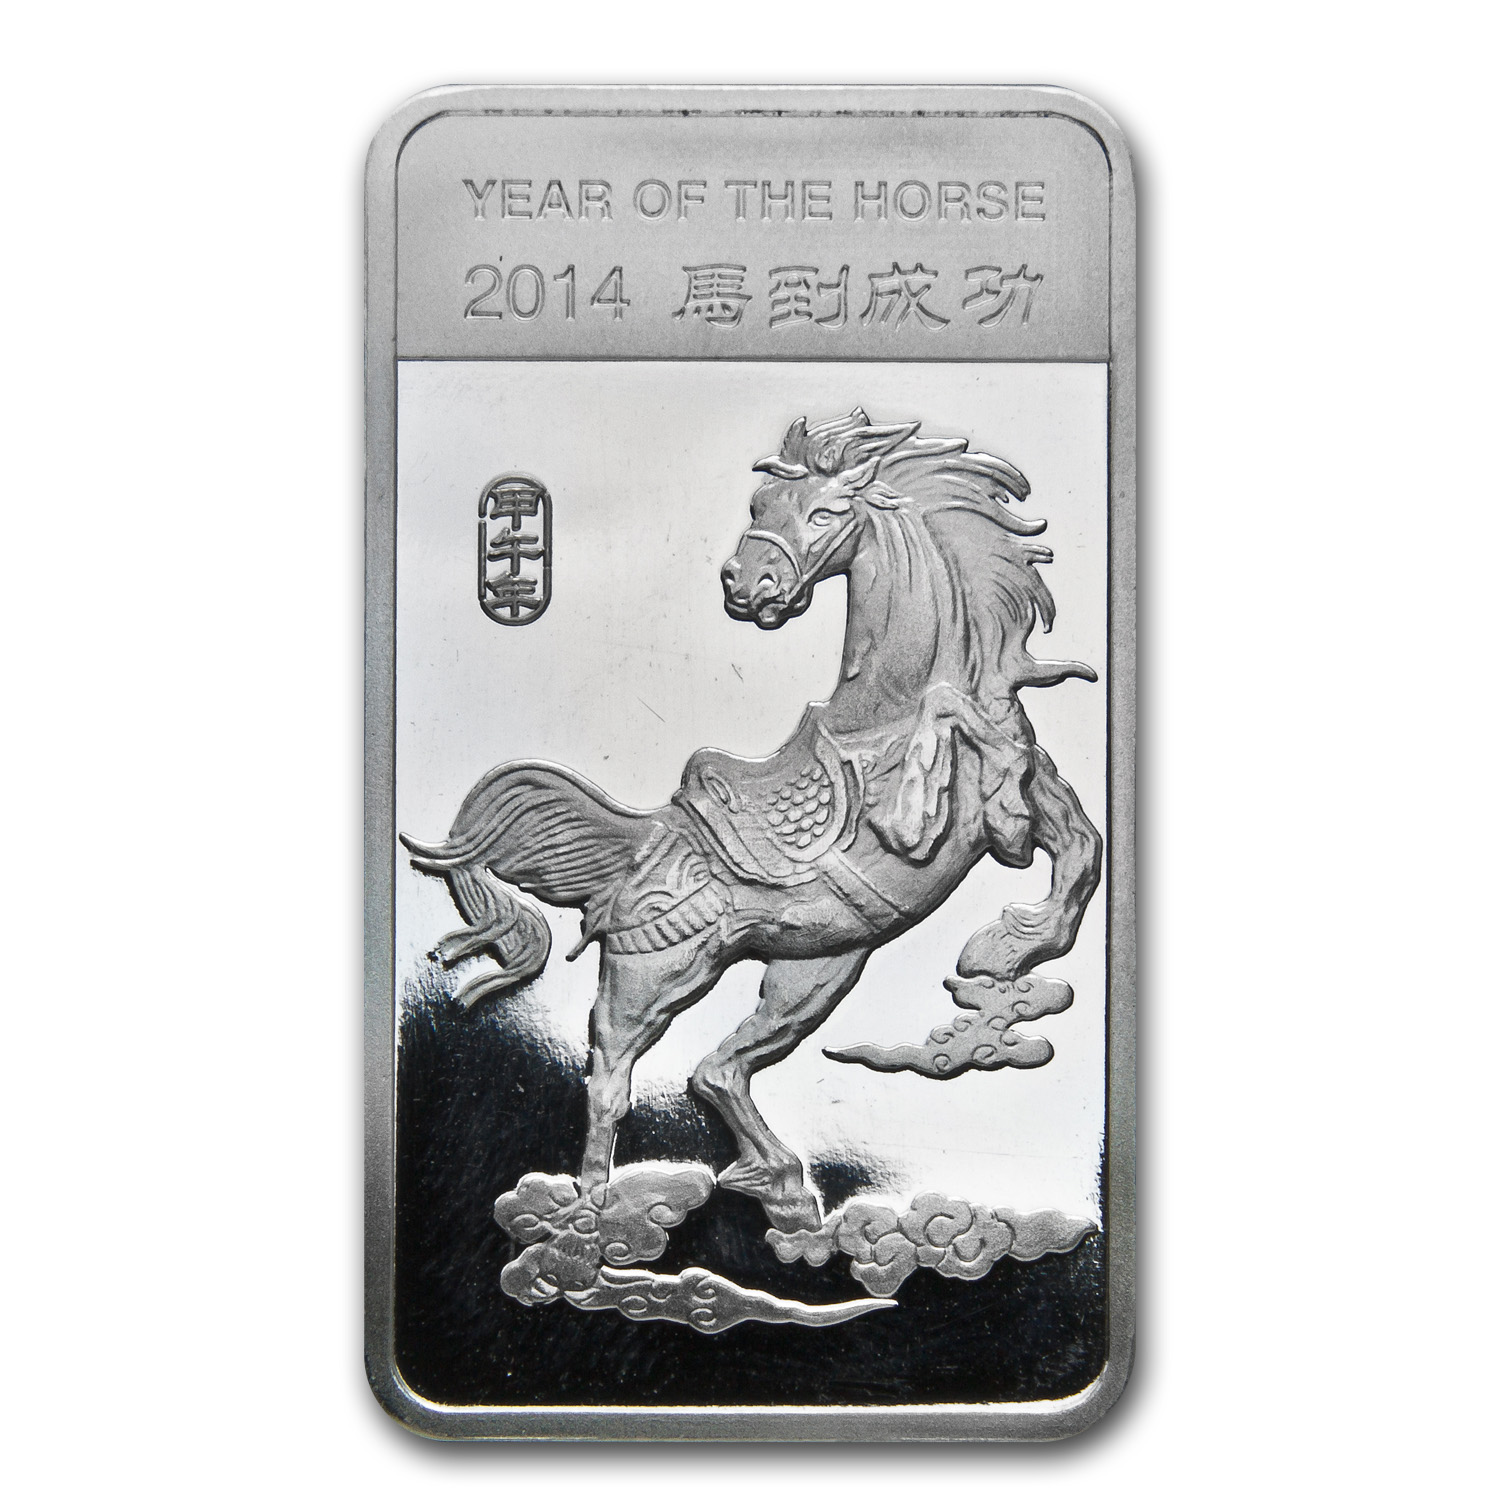 1/2 oz Silver Bar - APMEX (2014 Year of the Horse)